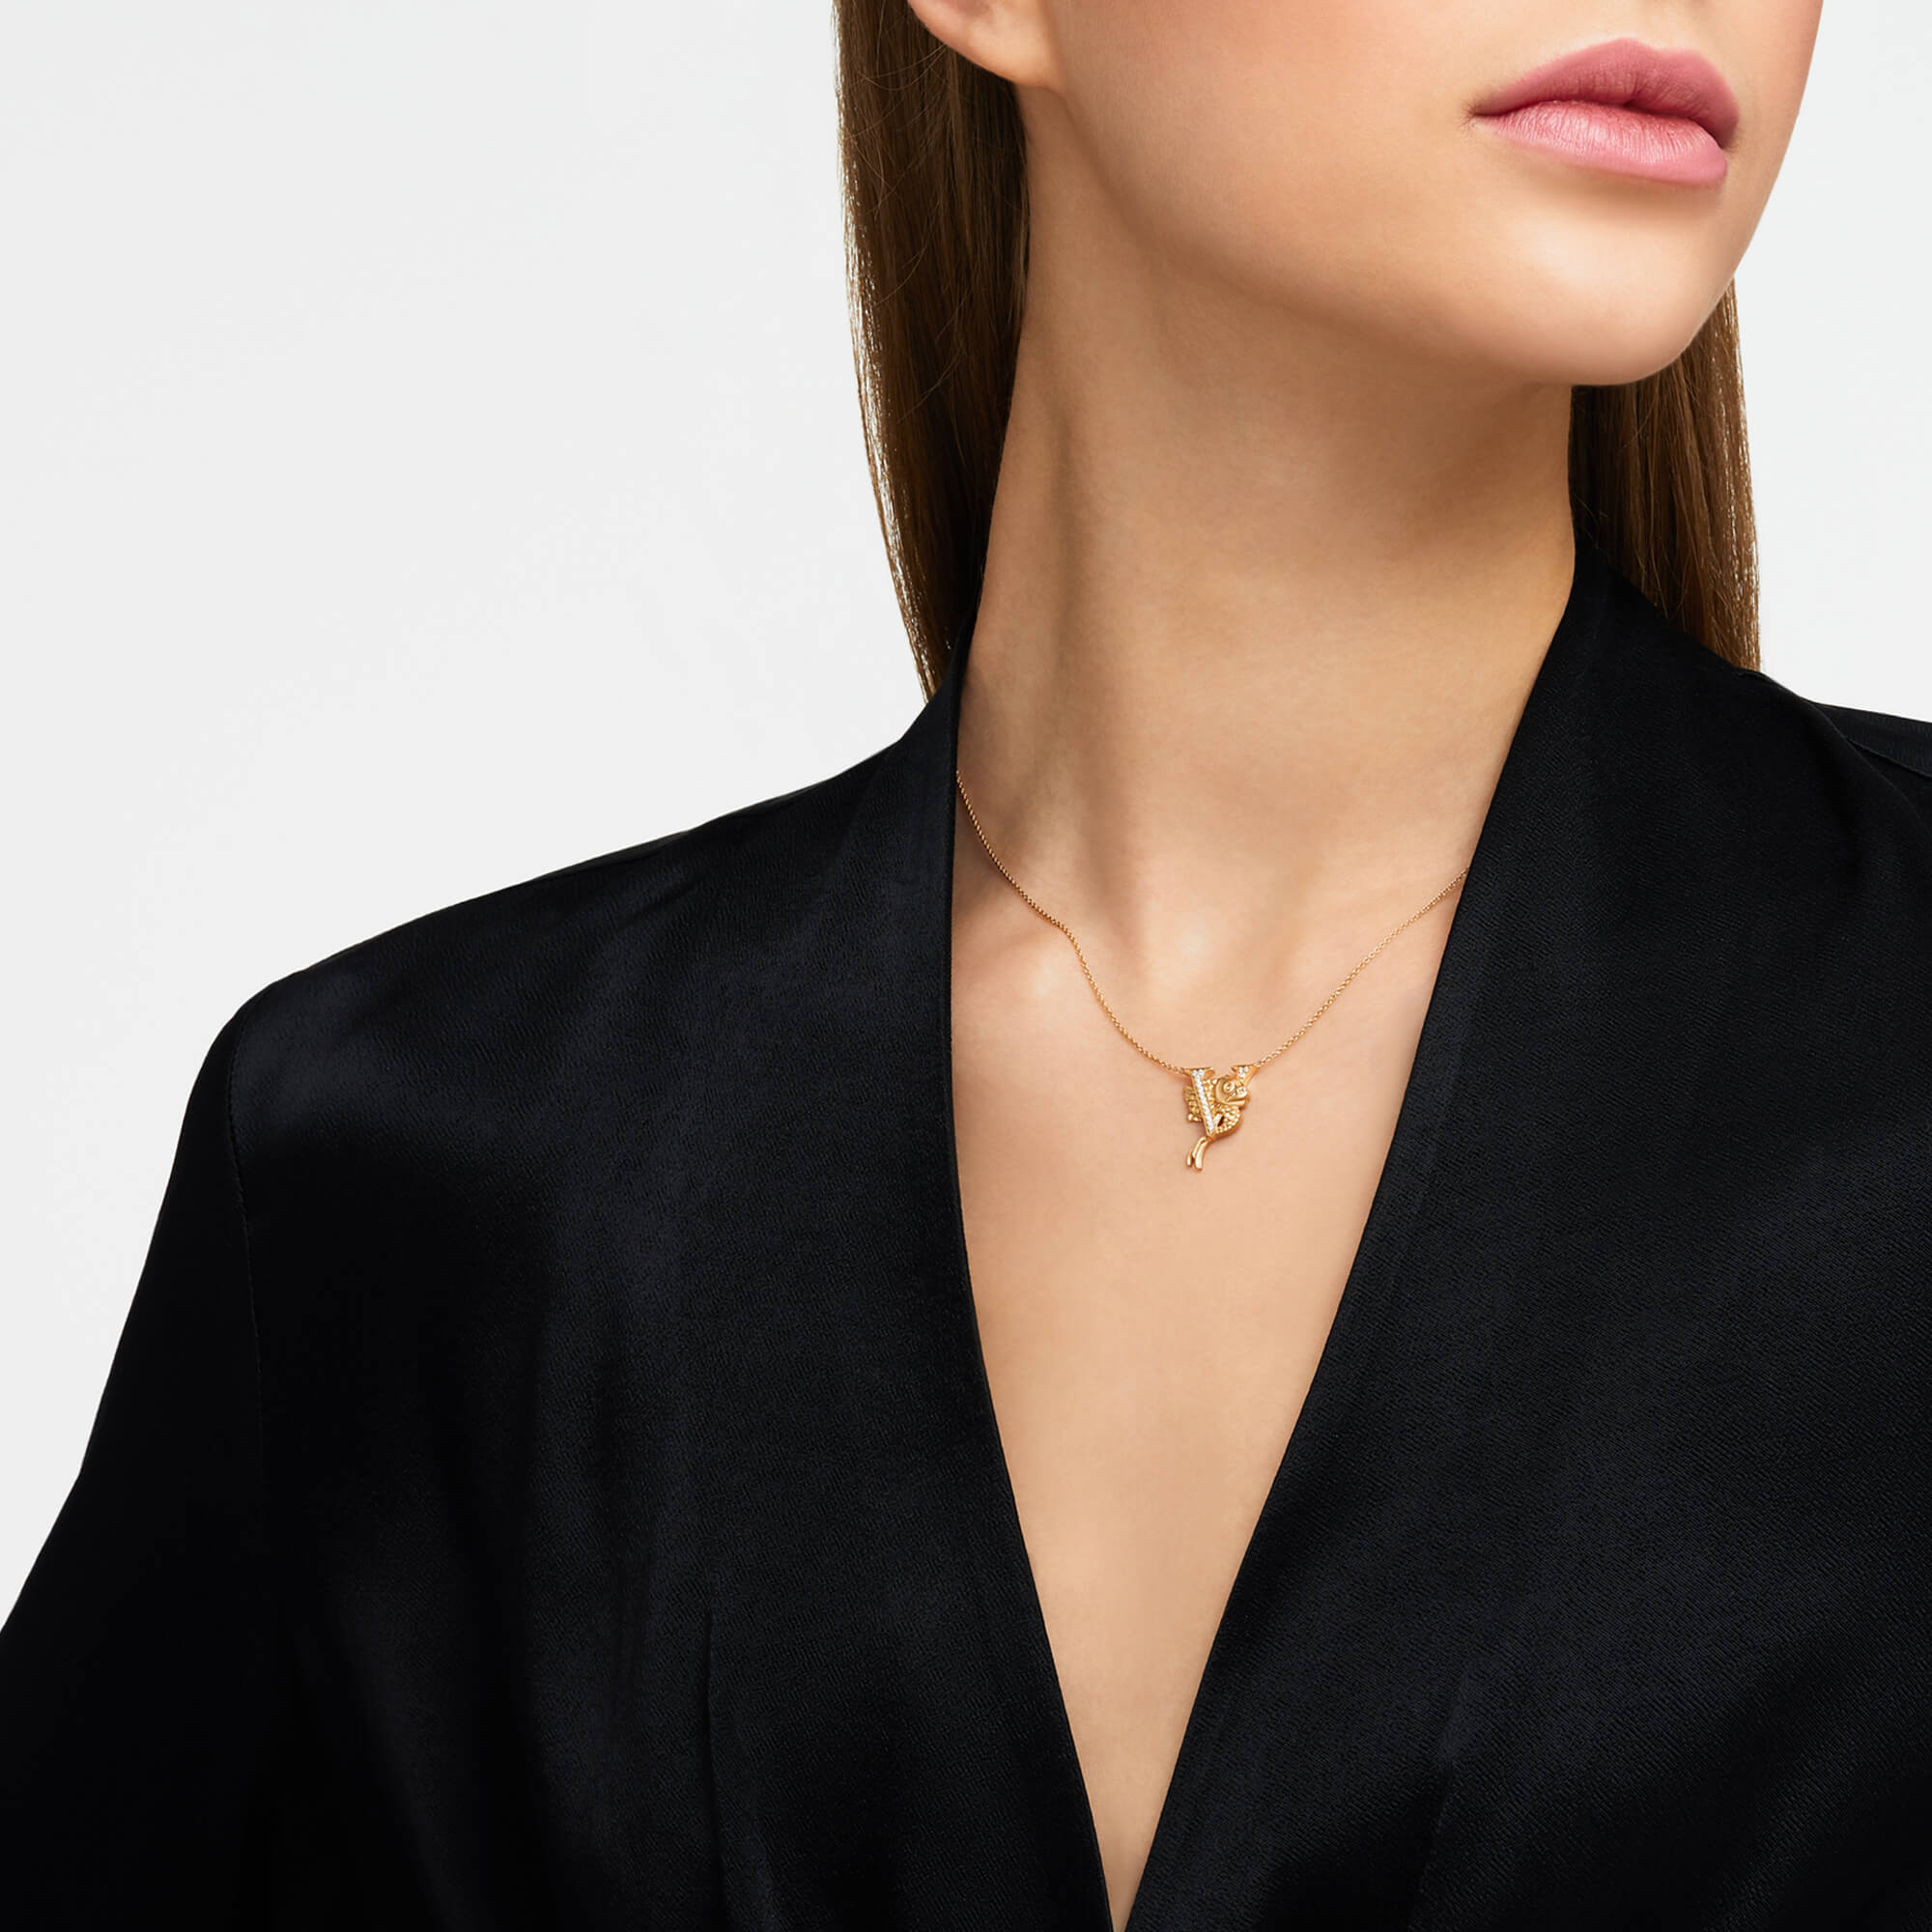 V is for Viper Fish Gold Necklace | Fish Tales